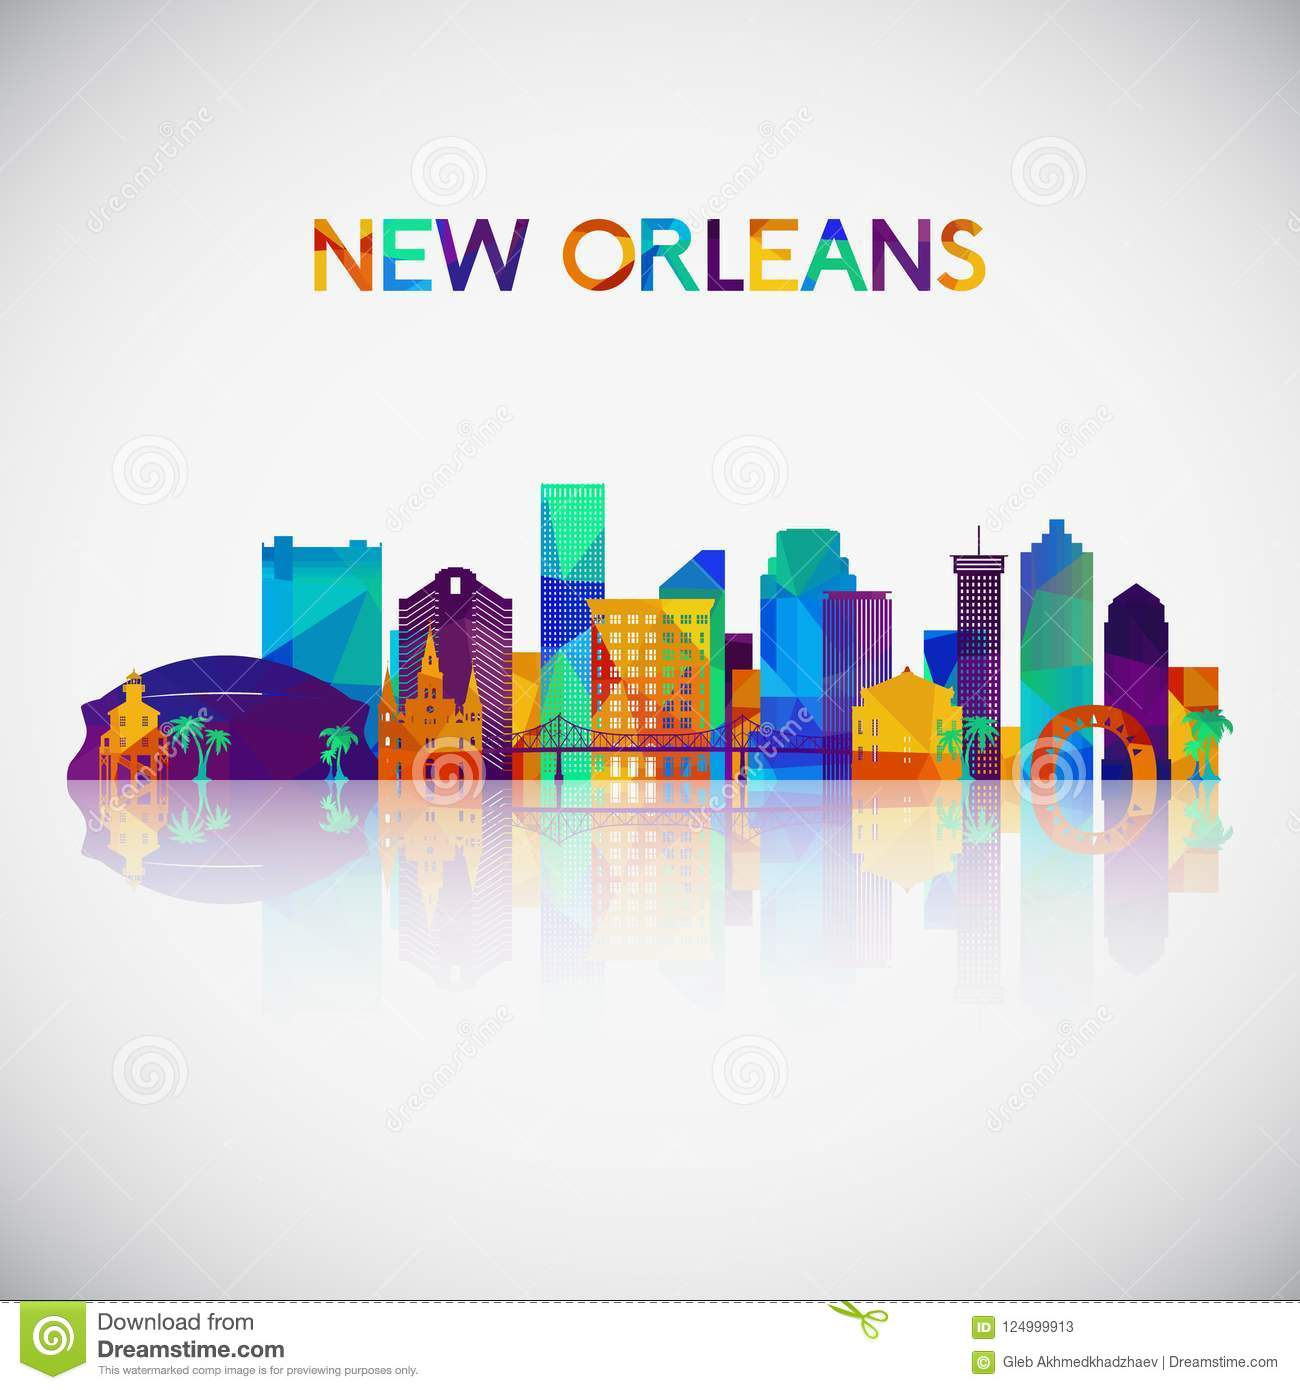 New Orleans skyline silhouette in colorful geometric style.